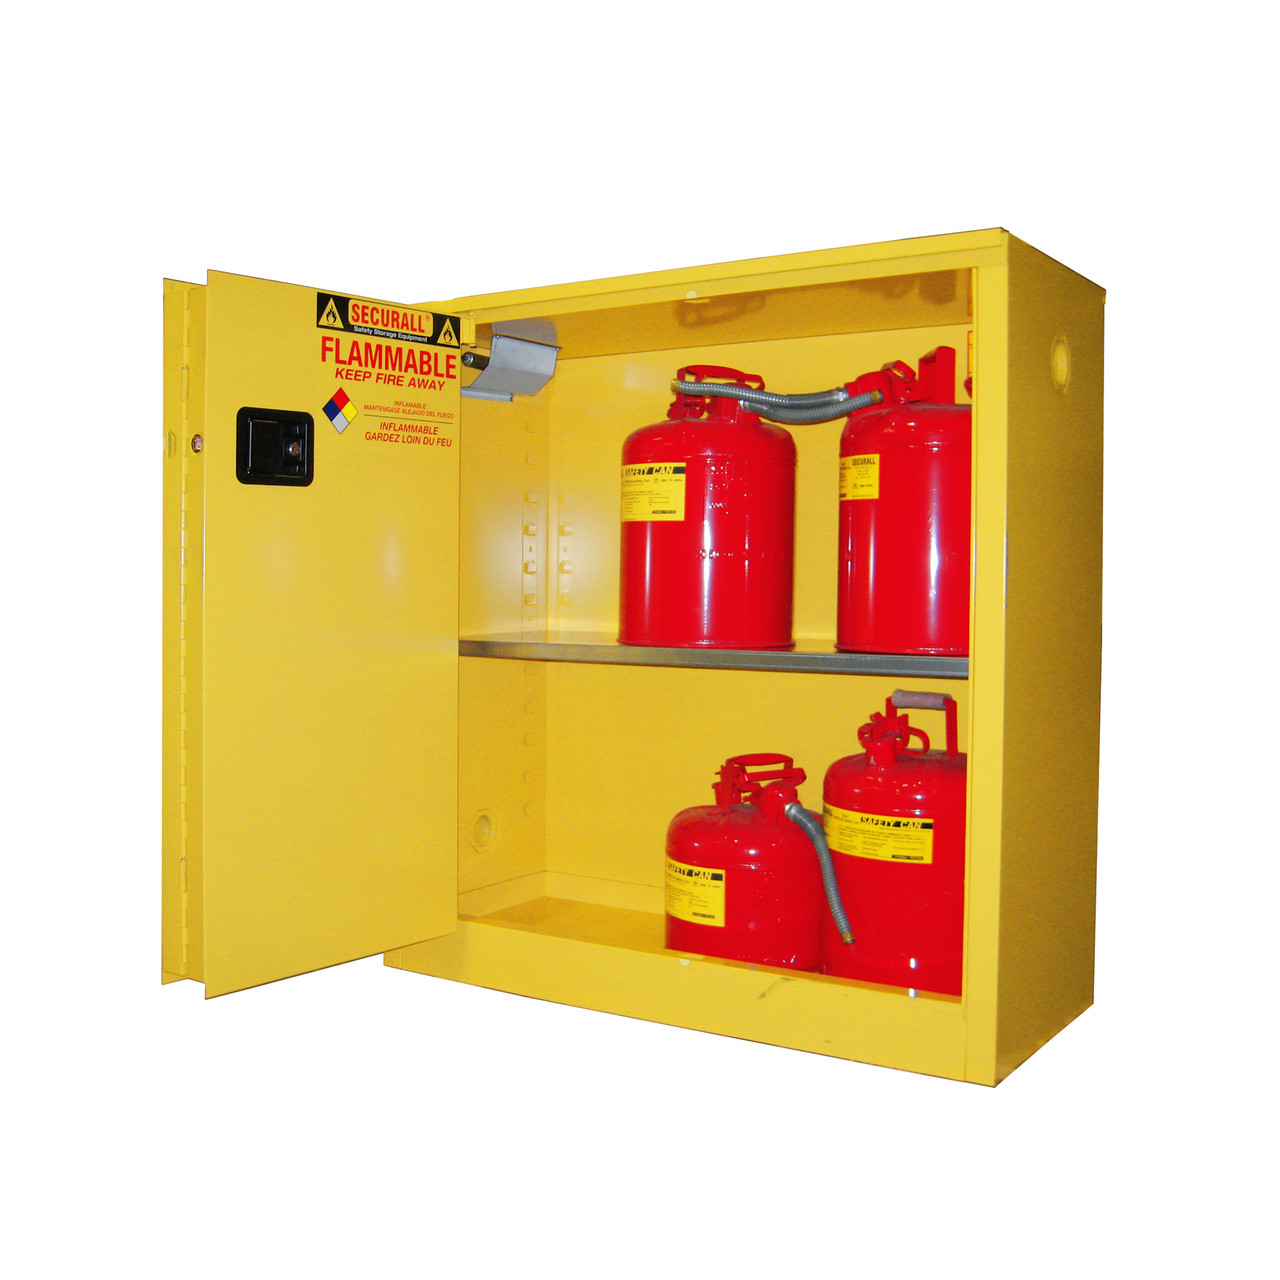 Securall A230 Flammable Storage Cabinet 30 Gal Self Closing